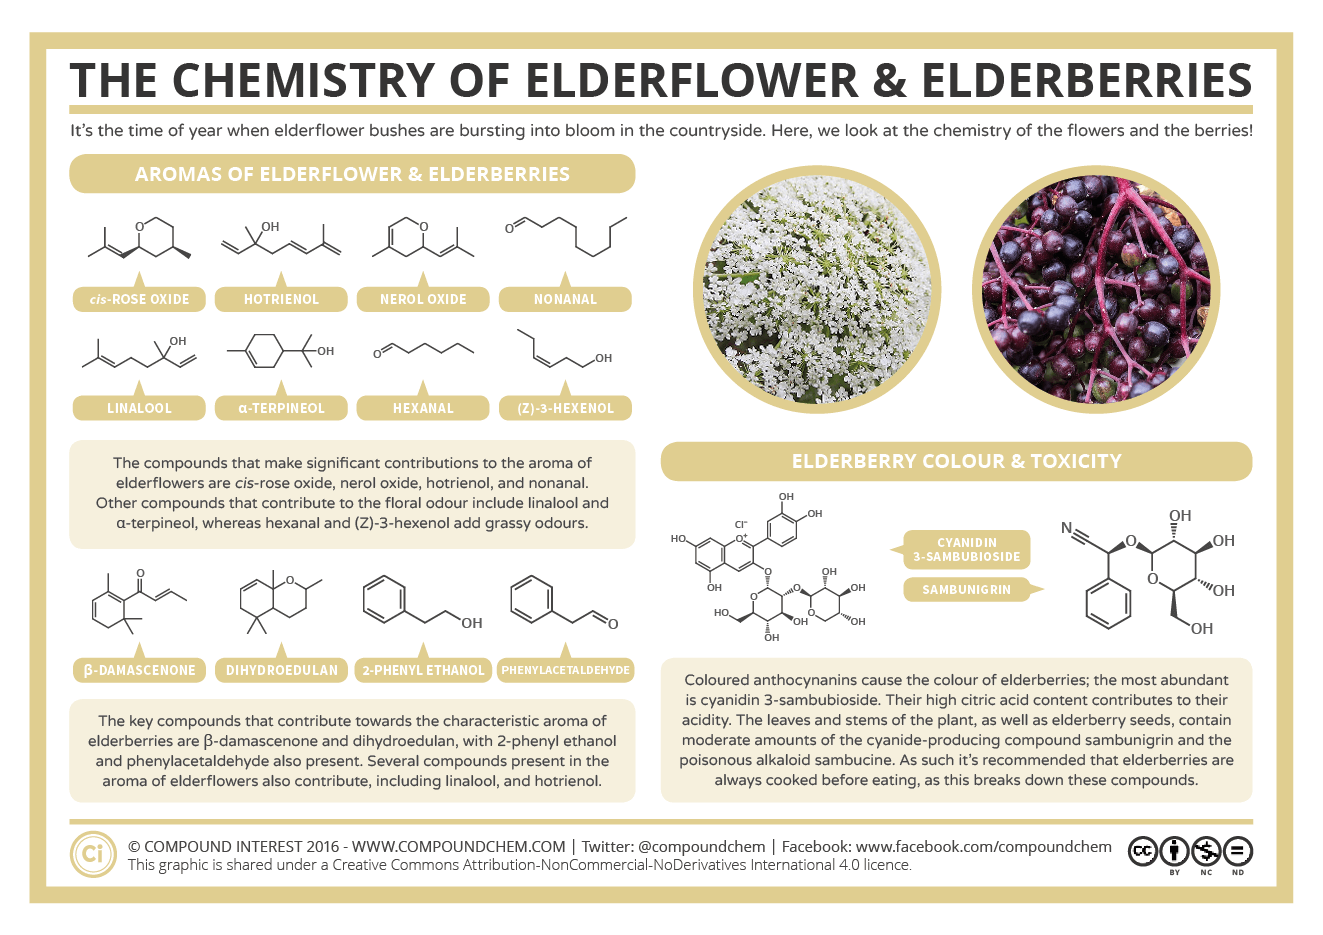 The Chemistry of Elderberries Infographic by CompoundChem.com